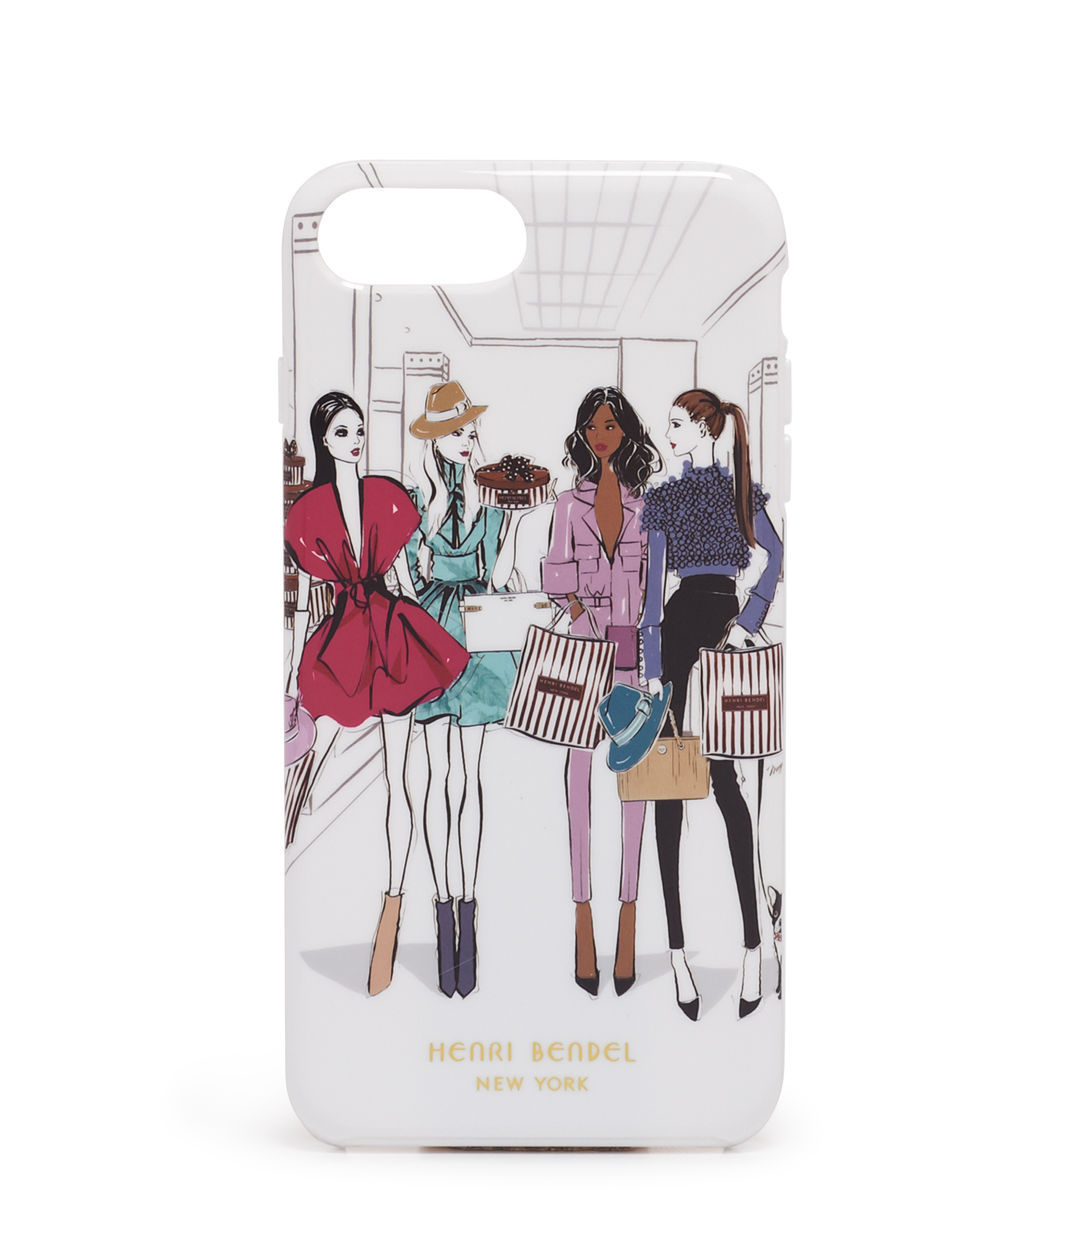 日本未☆Henri Bendel☆Runway Girls iPhone6/7 plus case 全込